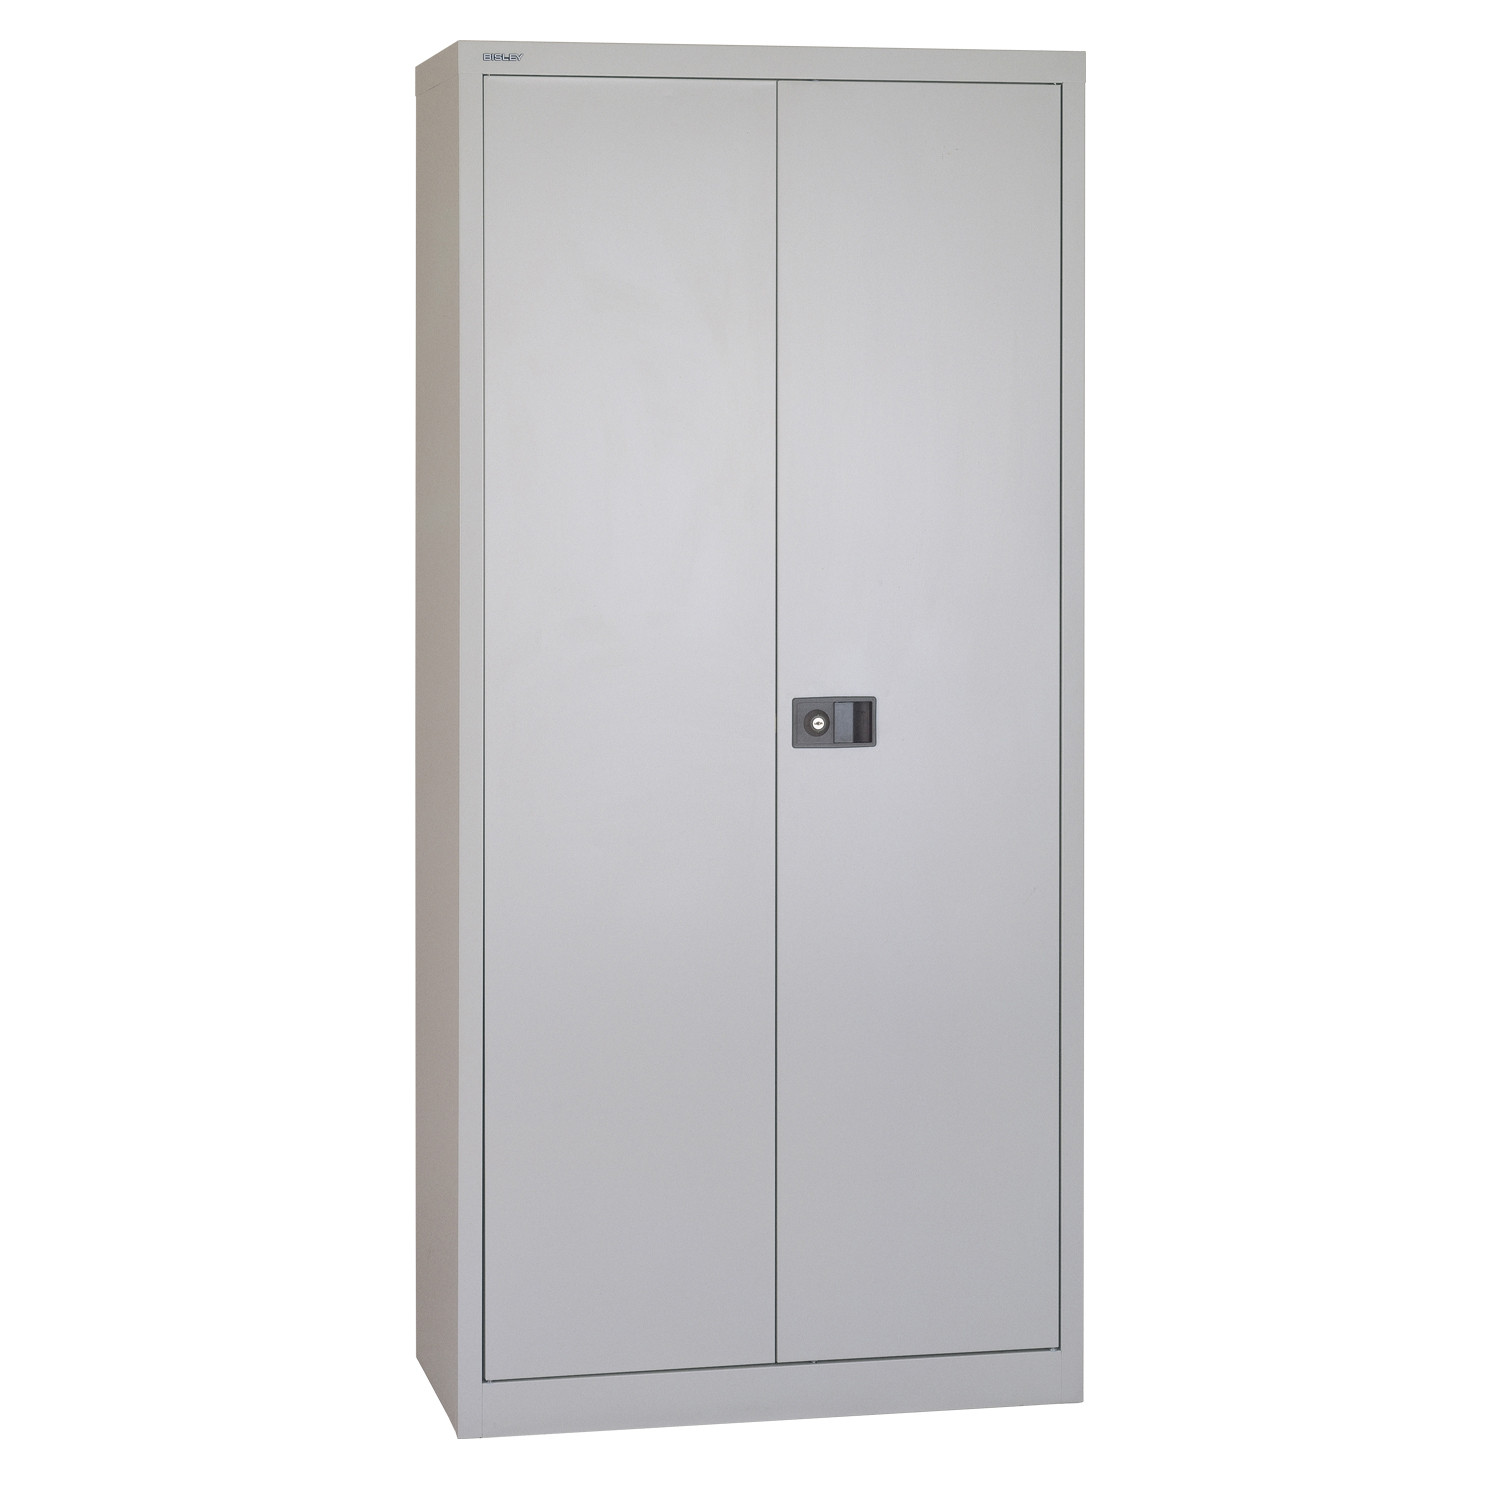 Two Door Office Cupboard in Goose Grey